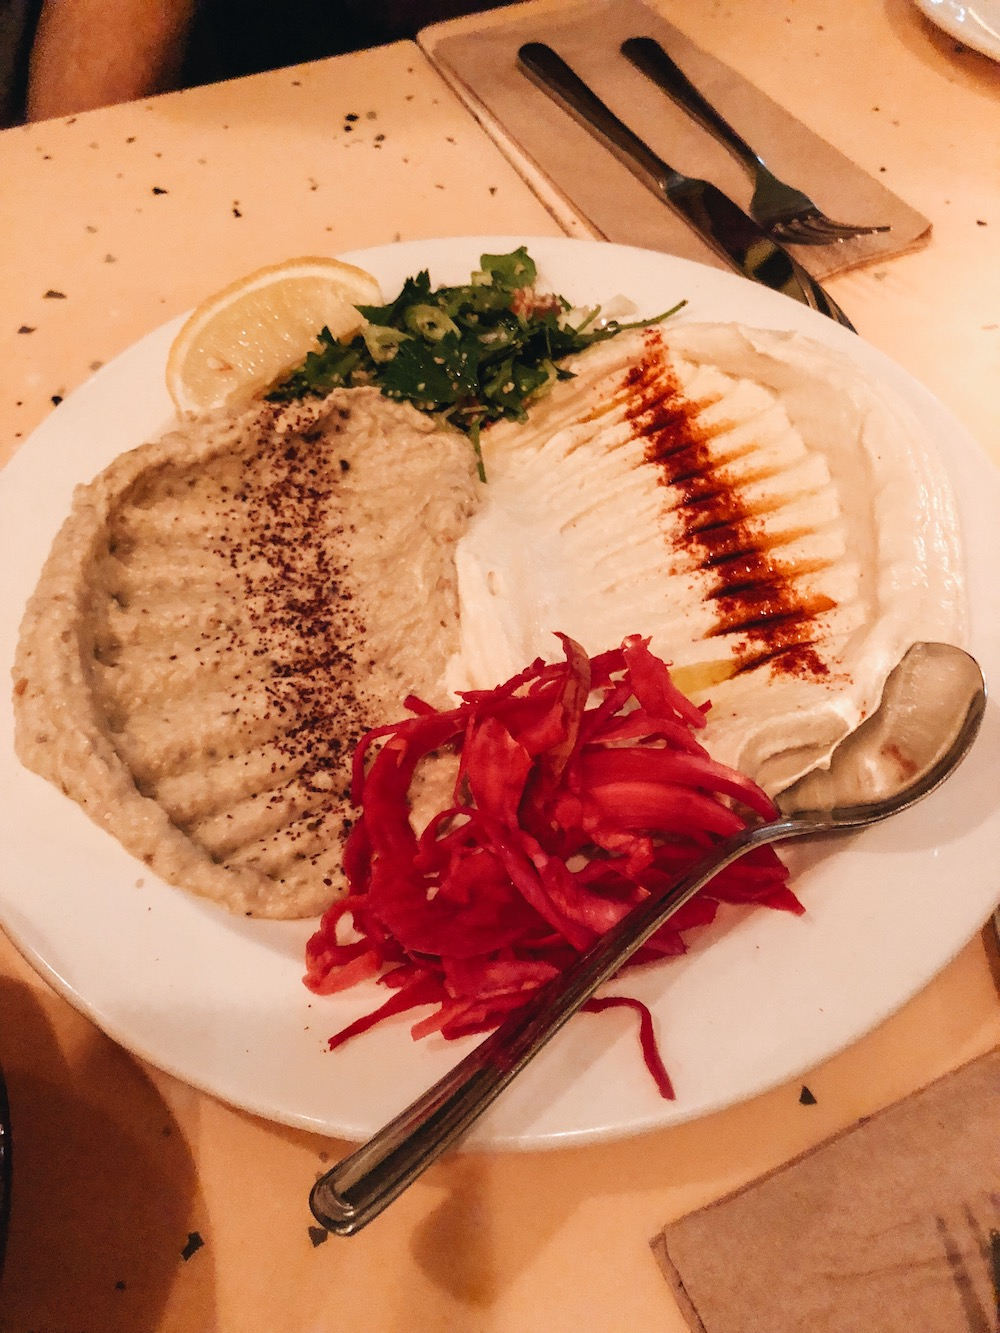 First part of Le Feast from   NUBA   - hummus and baba ganoush